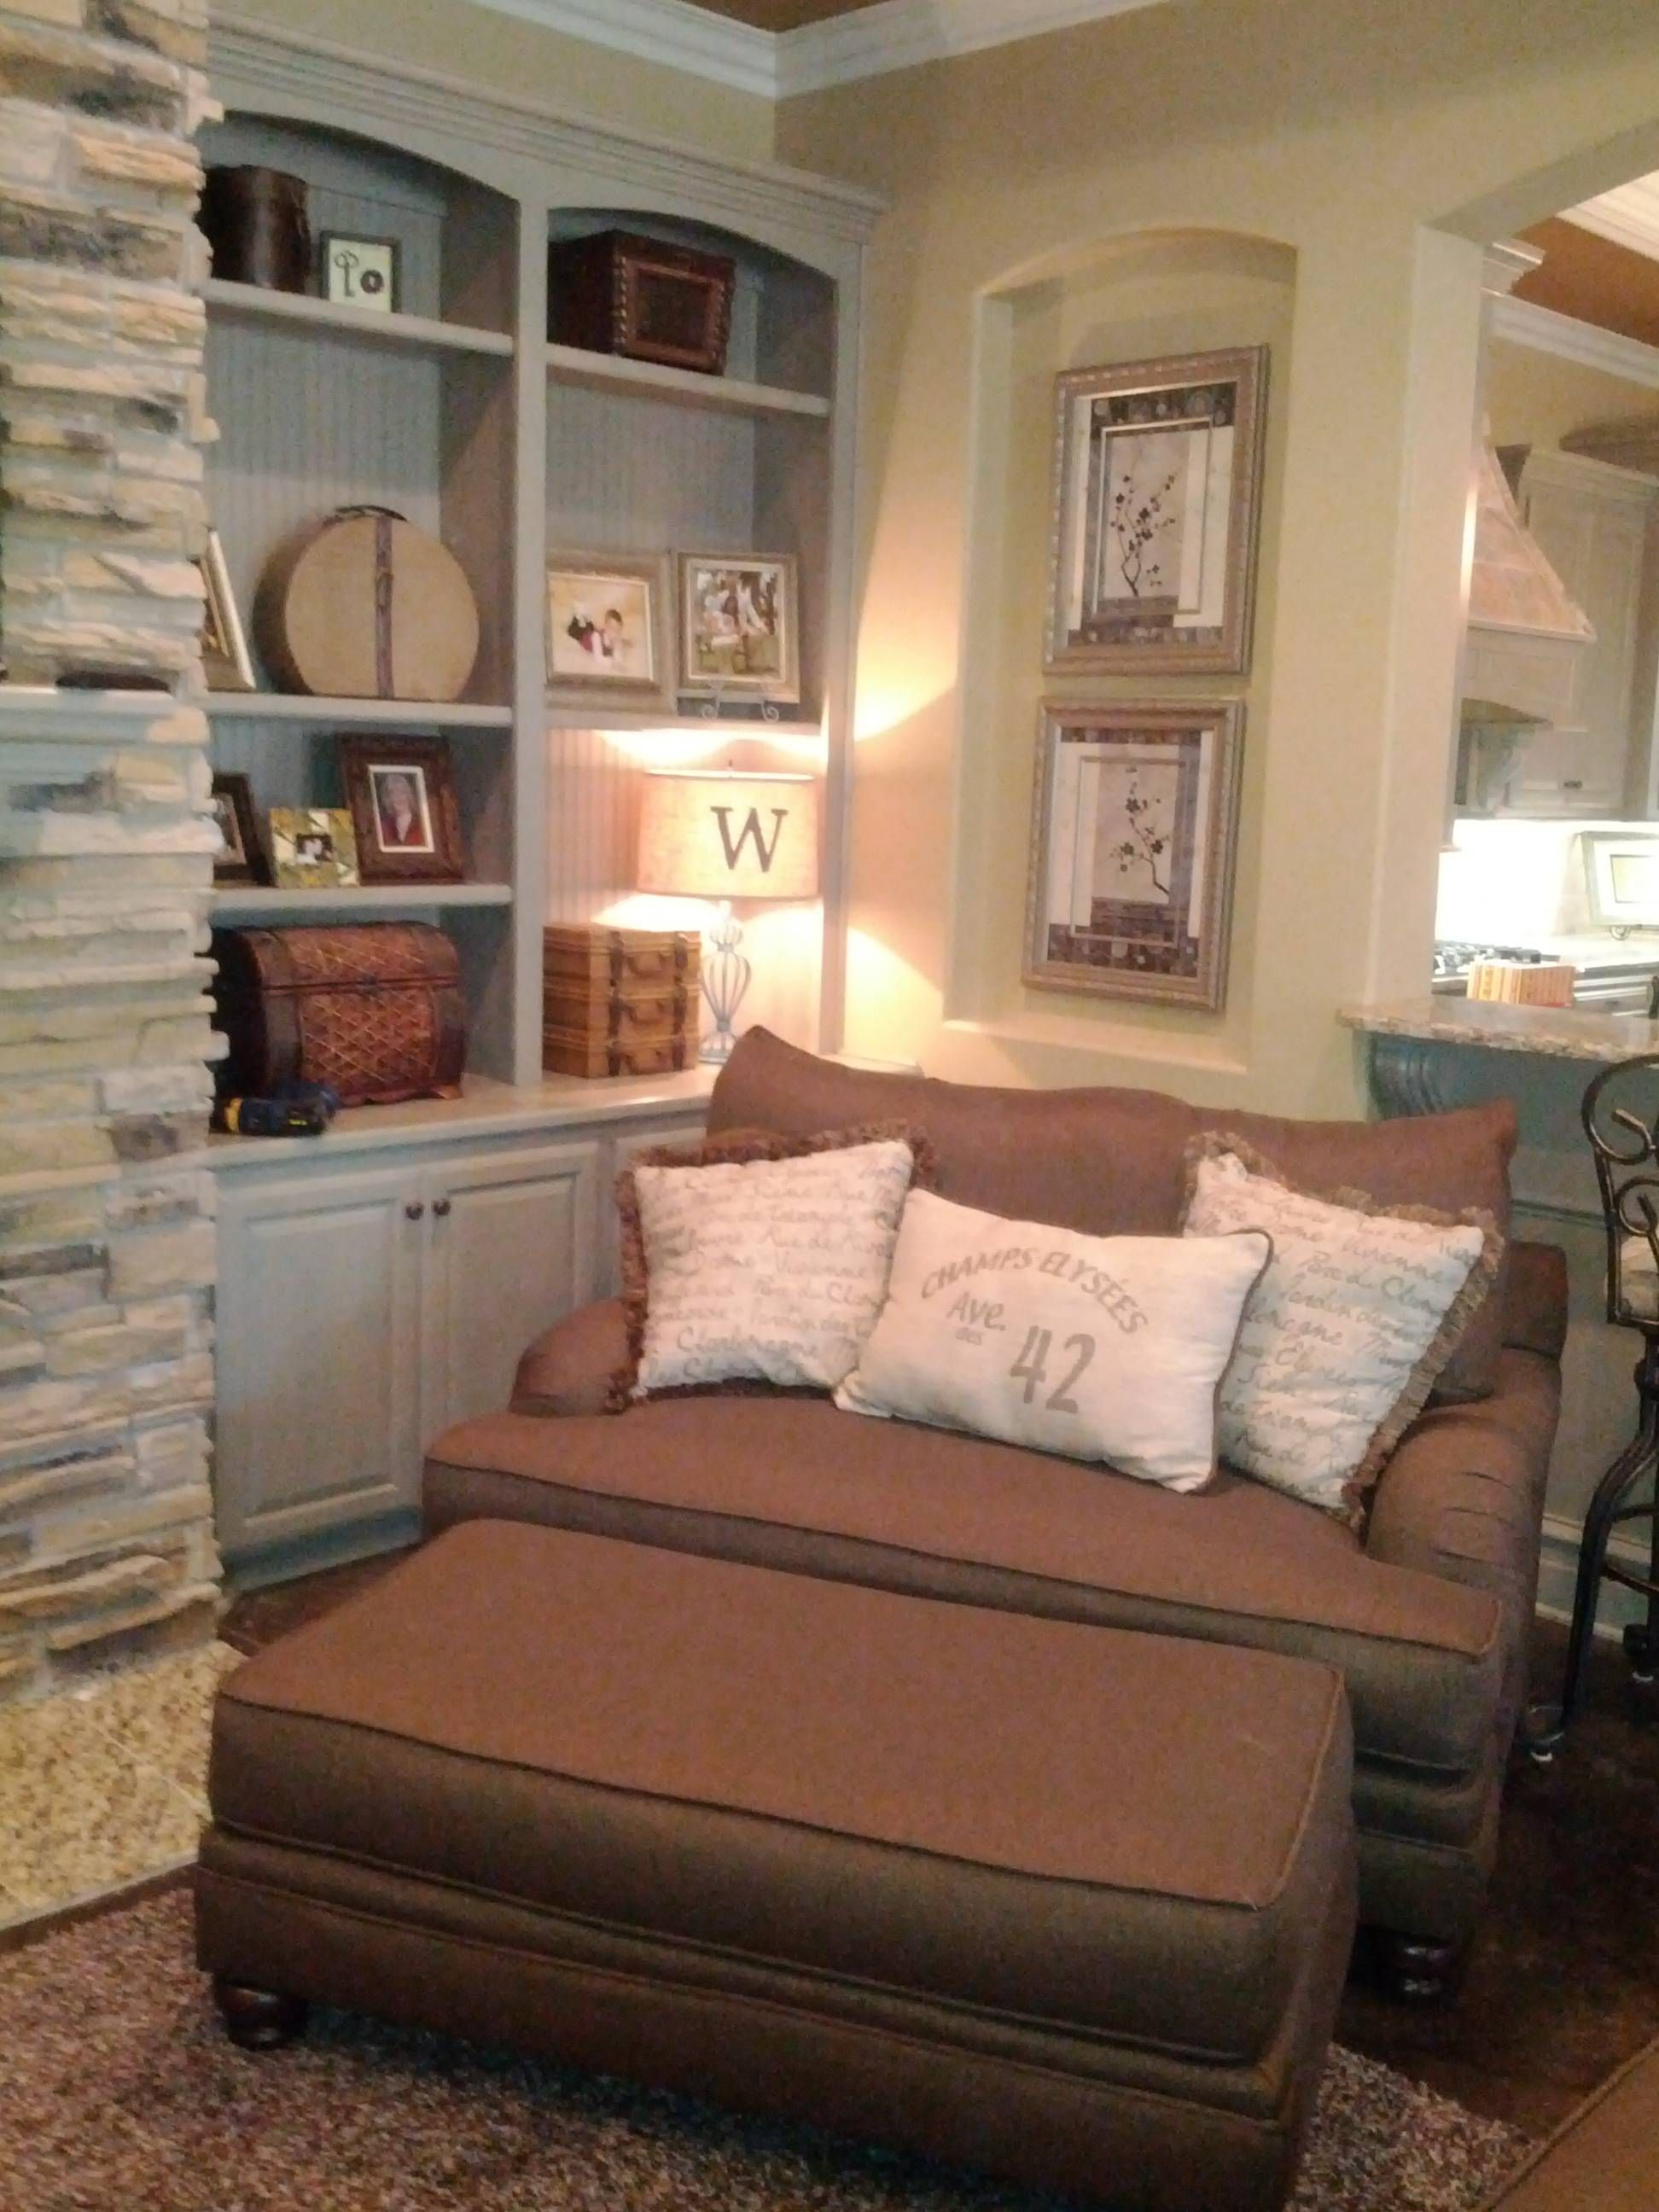 Oversized Comfy Chair Chair In Caddy Corner With Shelf Next To It N Deco Pics